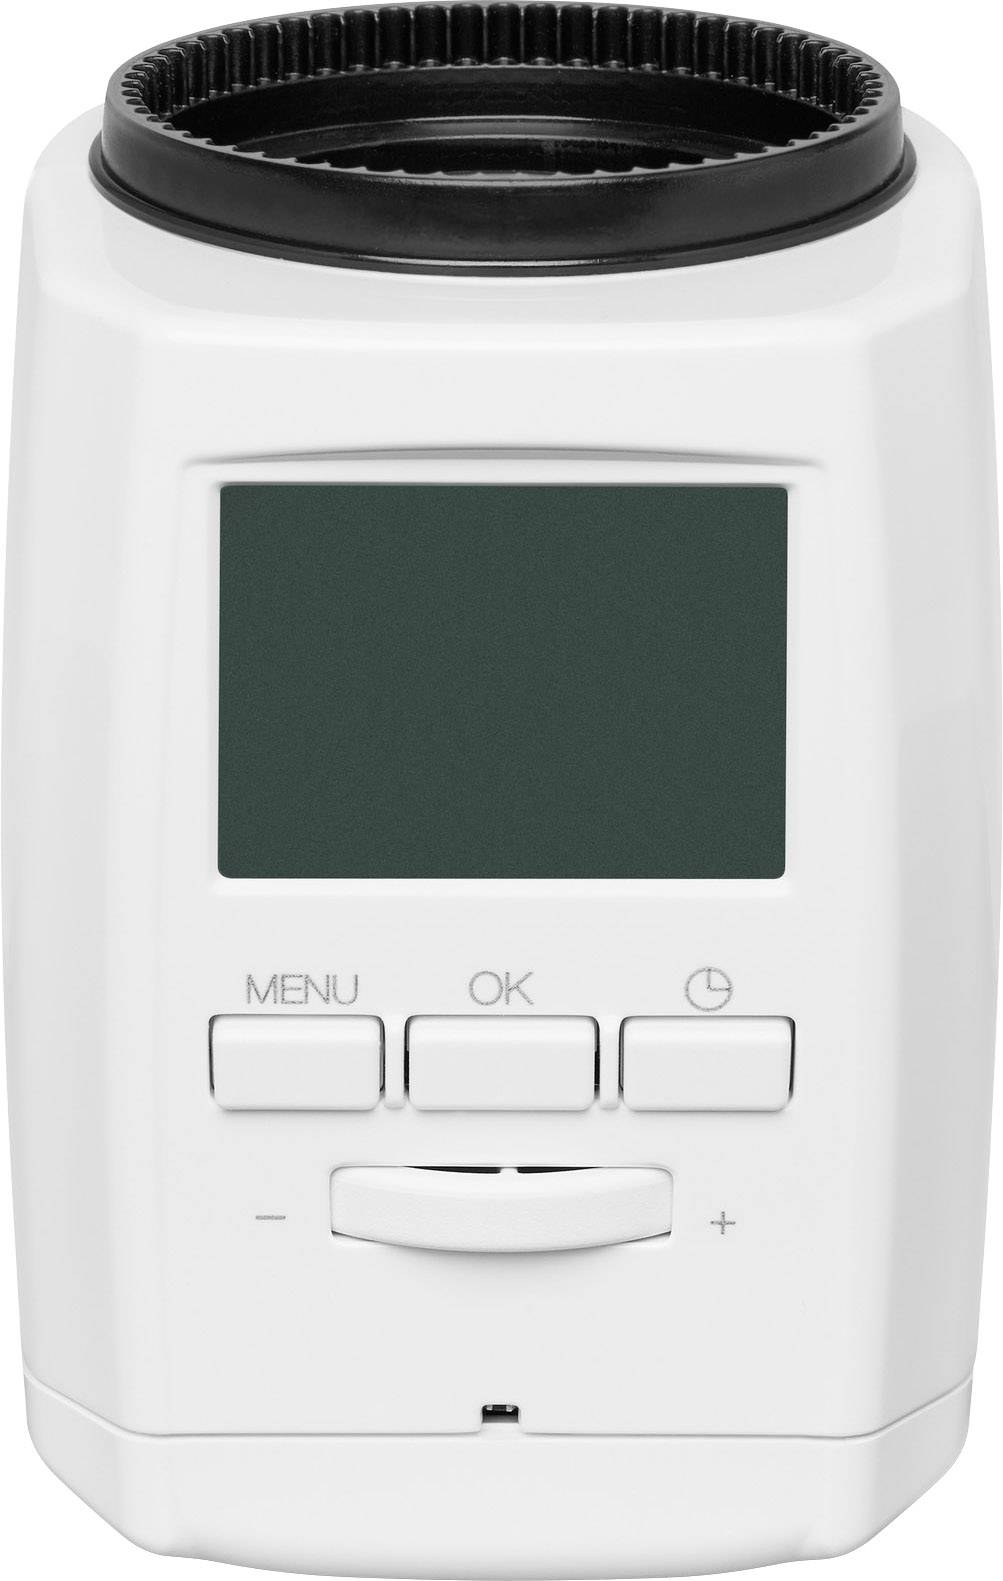 Heizkörperthermostat Max Medion Smart Home Funk Heizkörperthermostat P85711